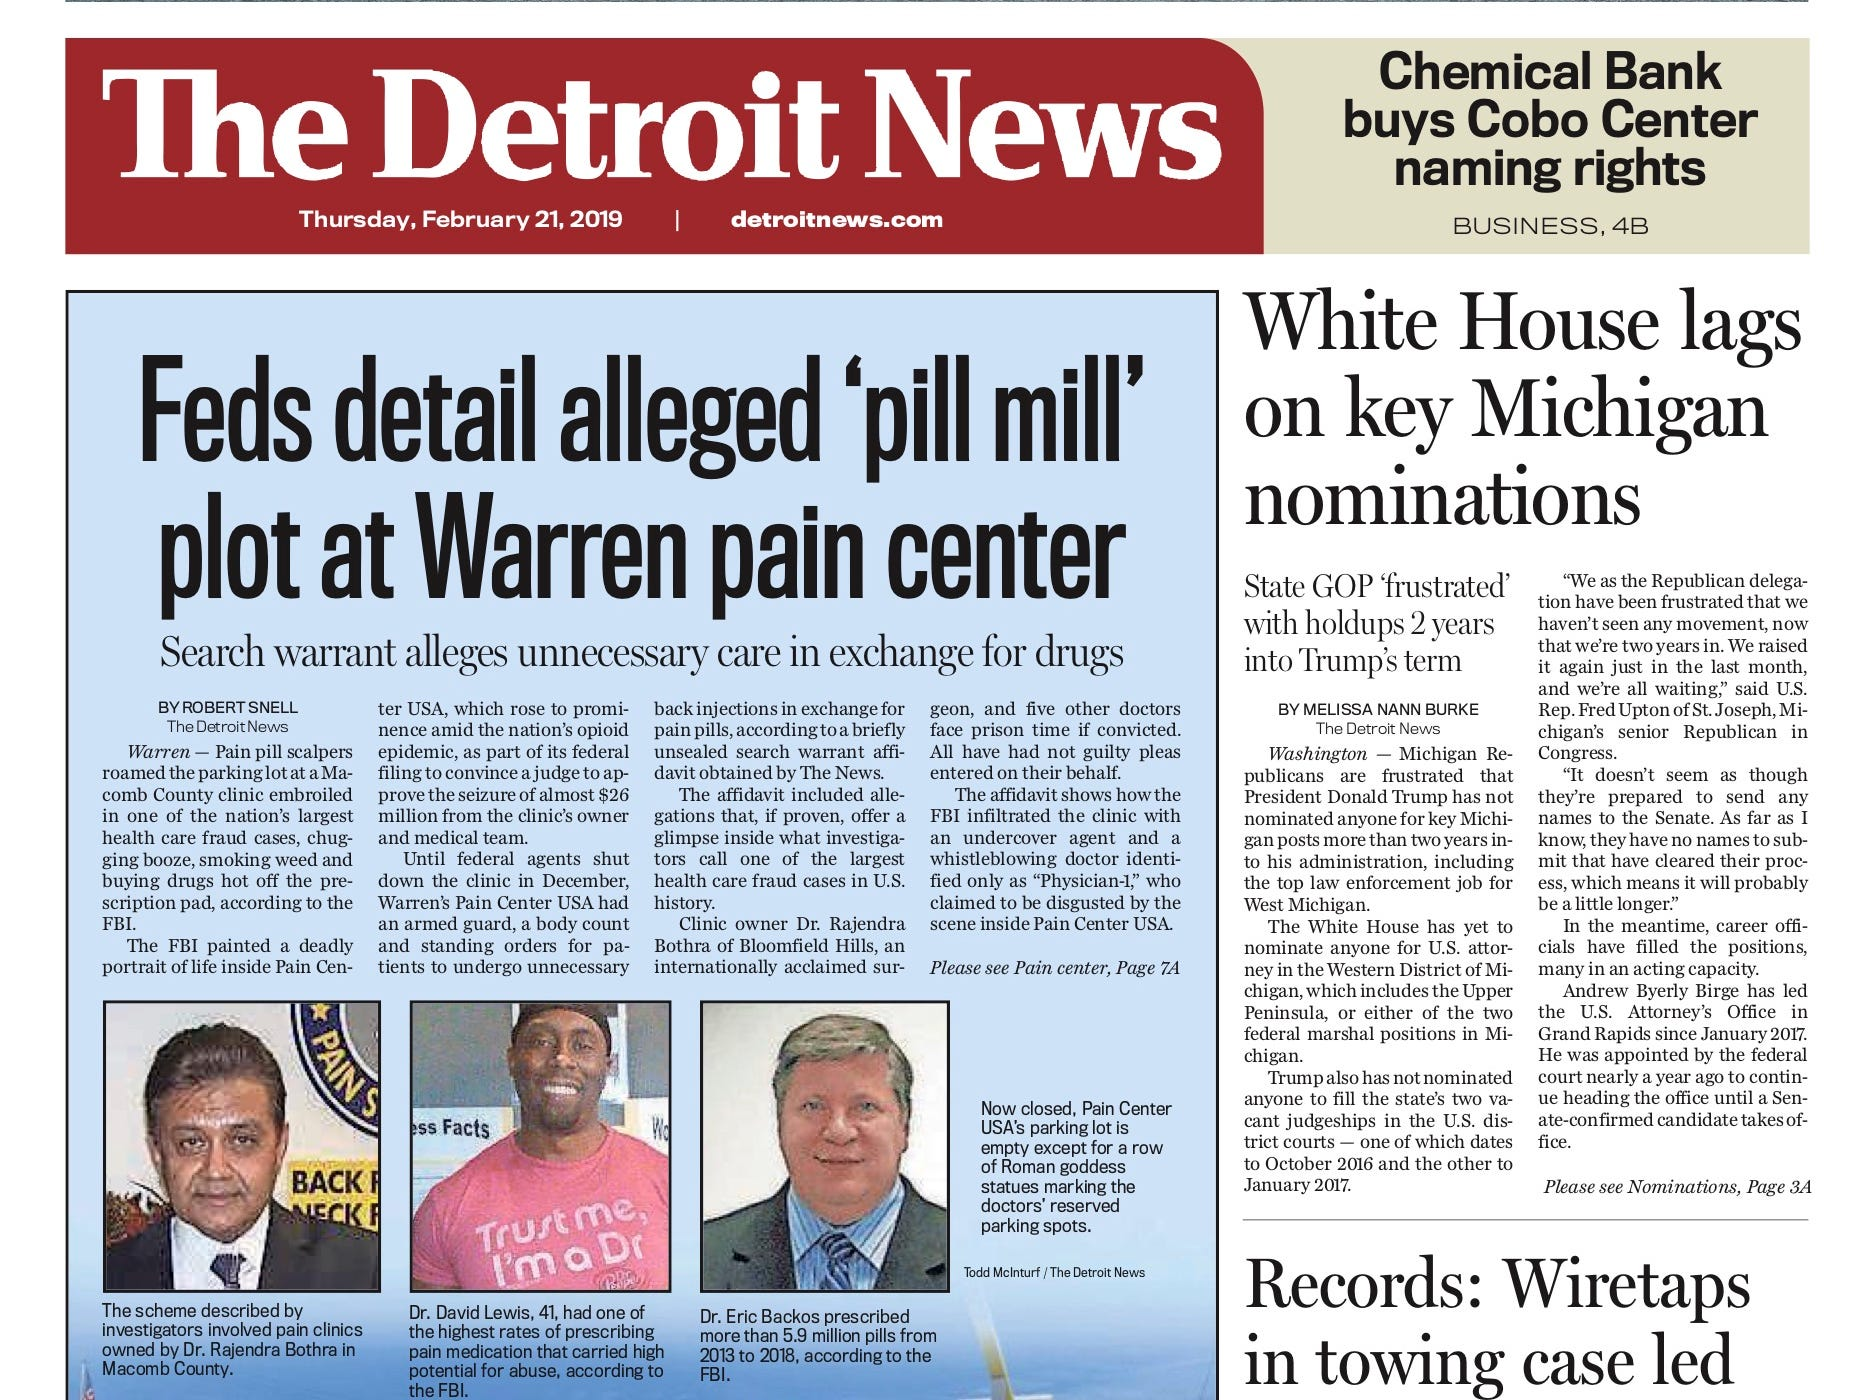 The front page of the Detroit News on February 21, 2019.